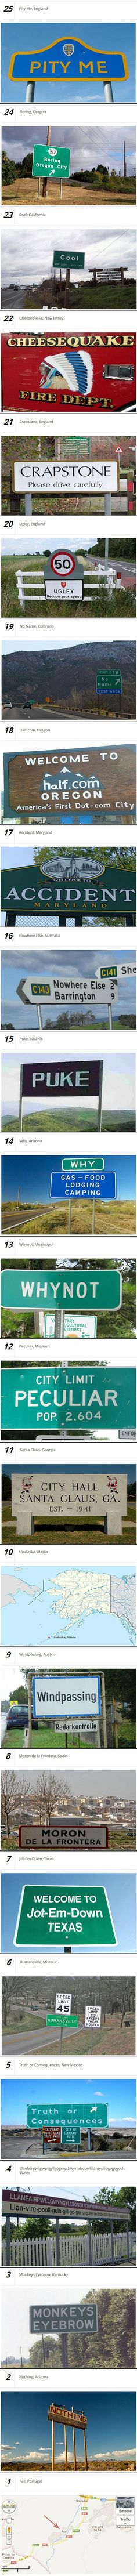 Here are some funny and strange city names you will not believe actually exist. These are hilarious